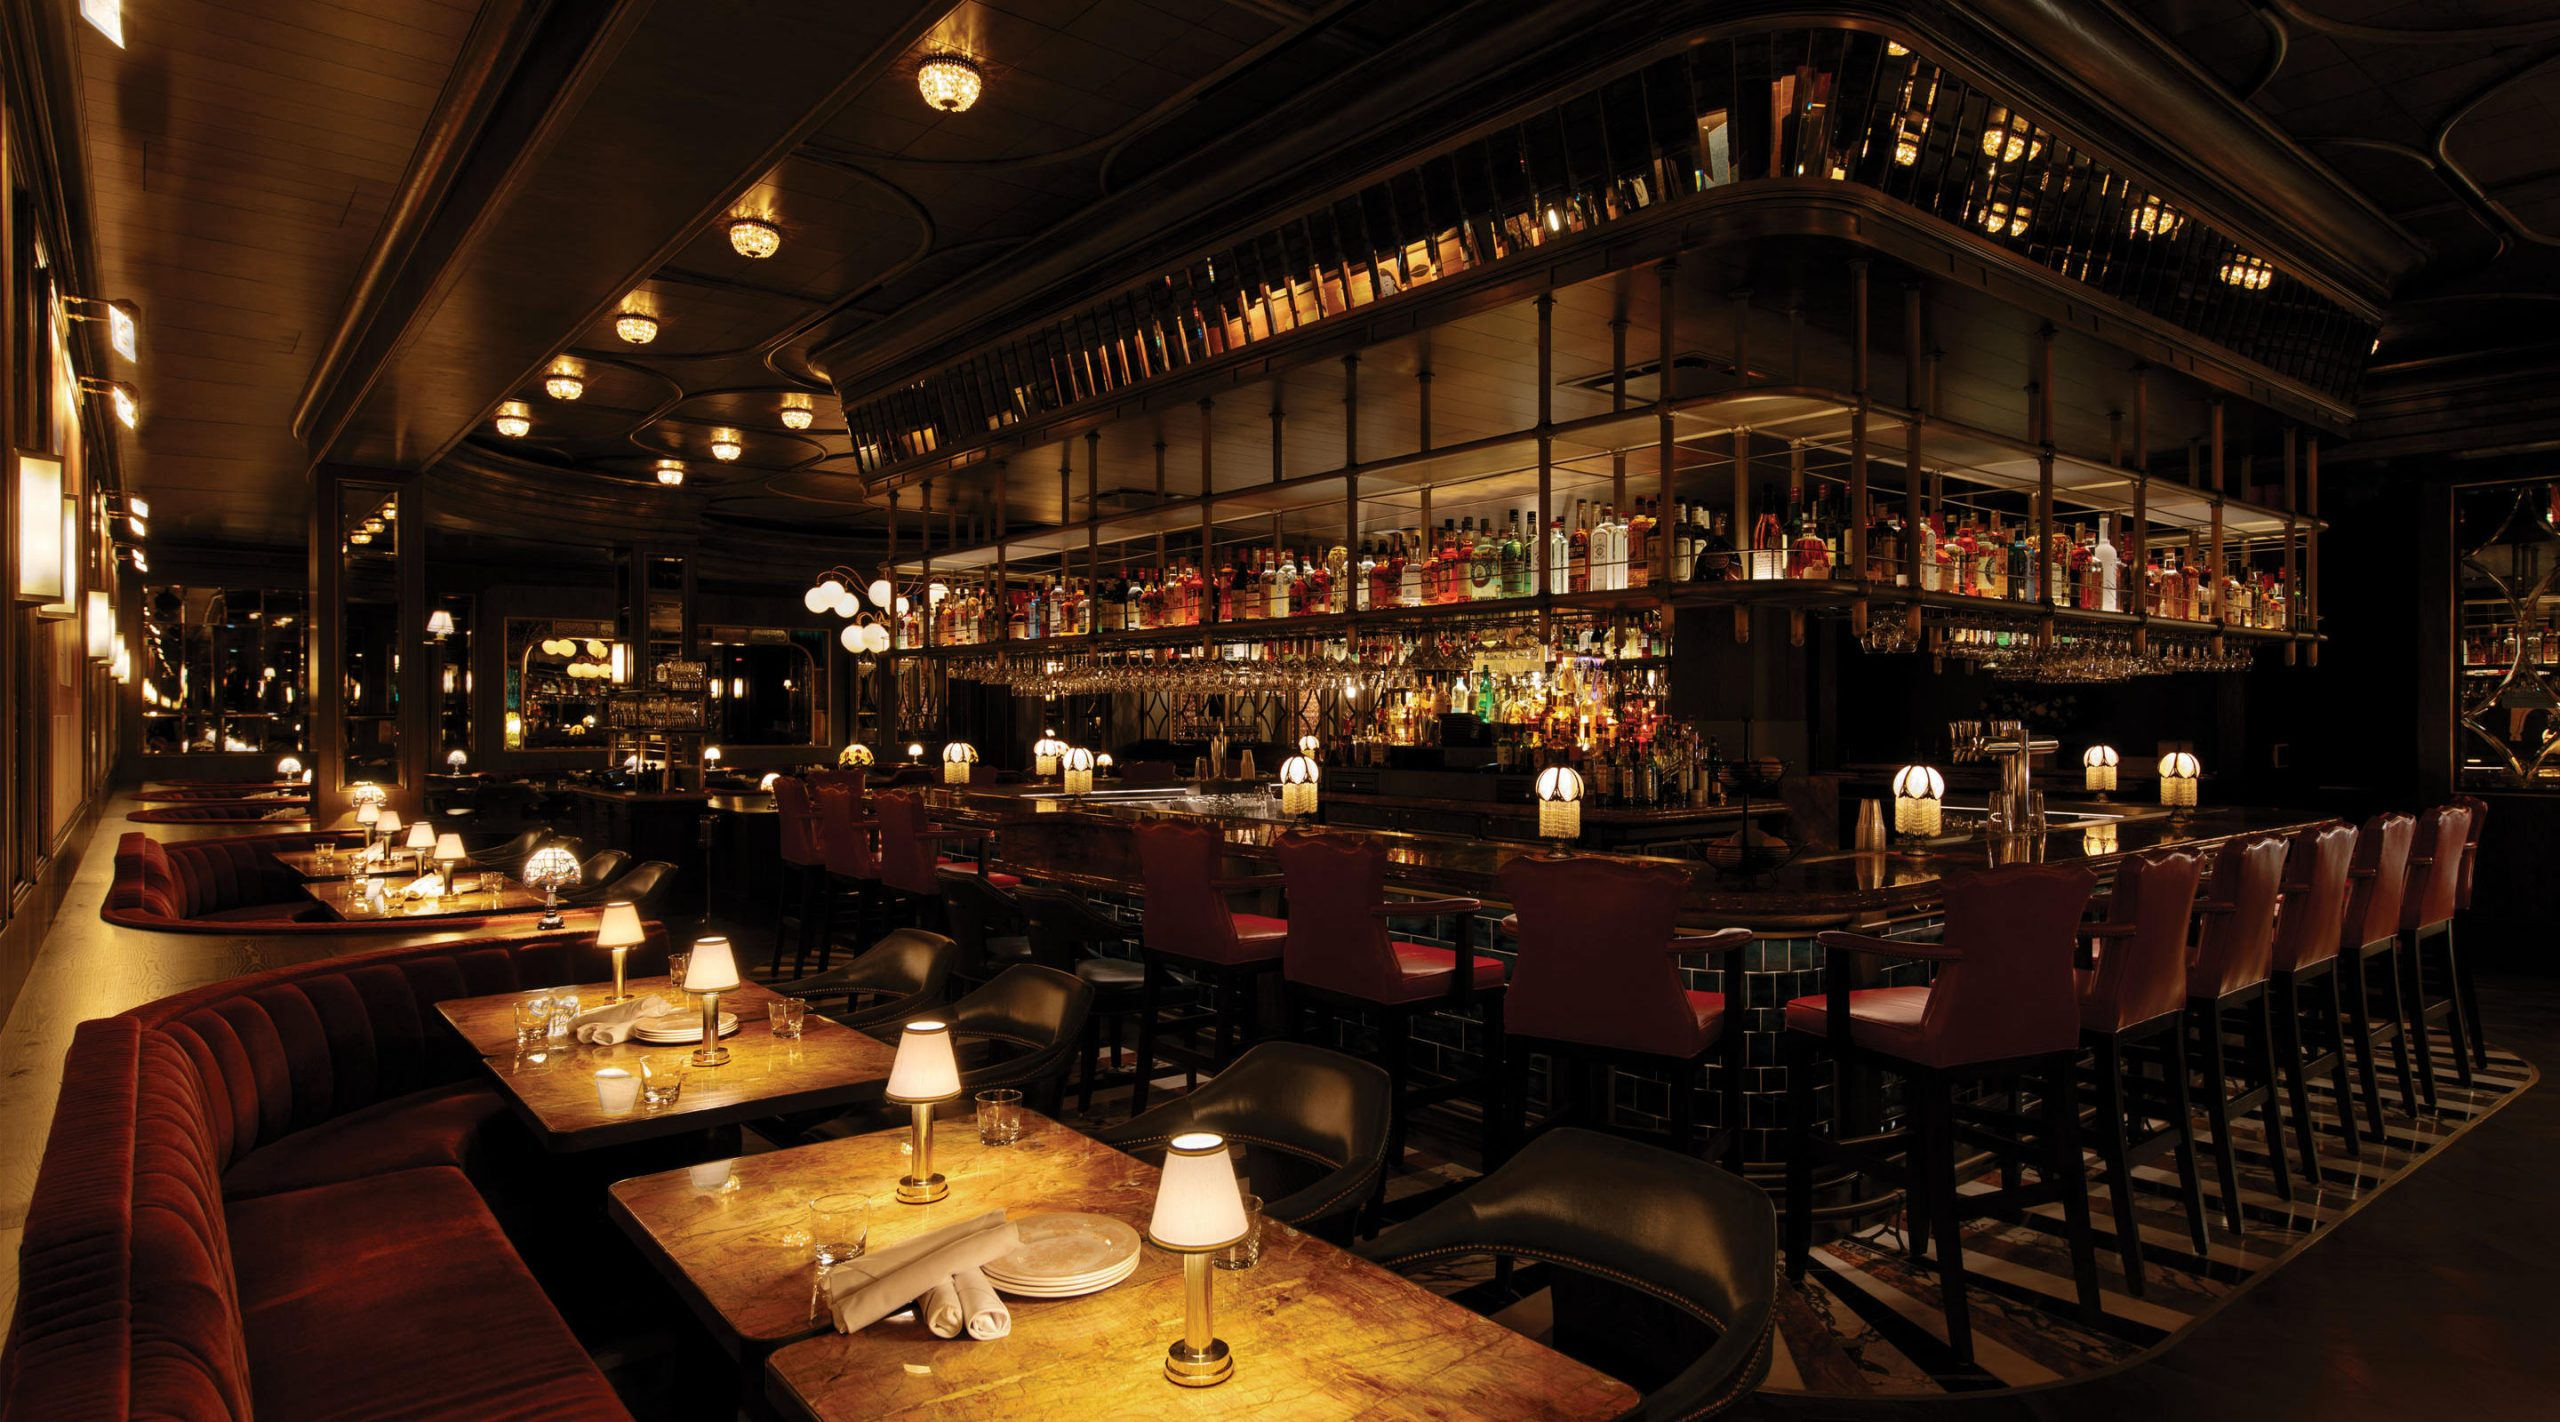 image of Bavette's Steakhouse and Bar interior with dim lights